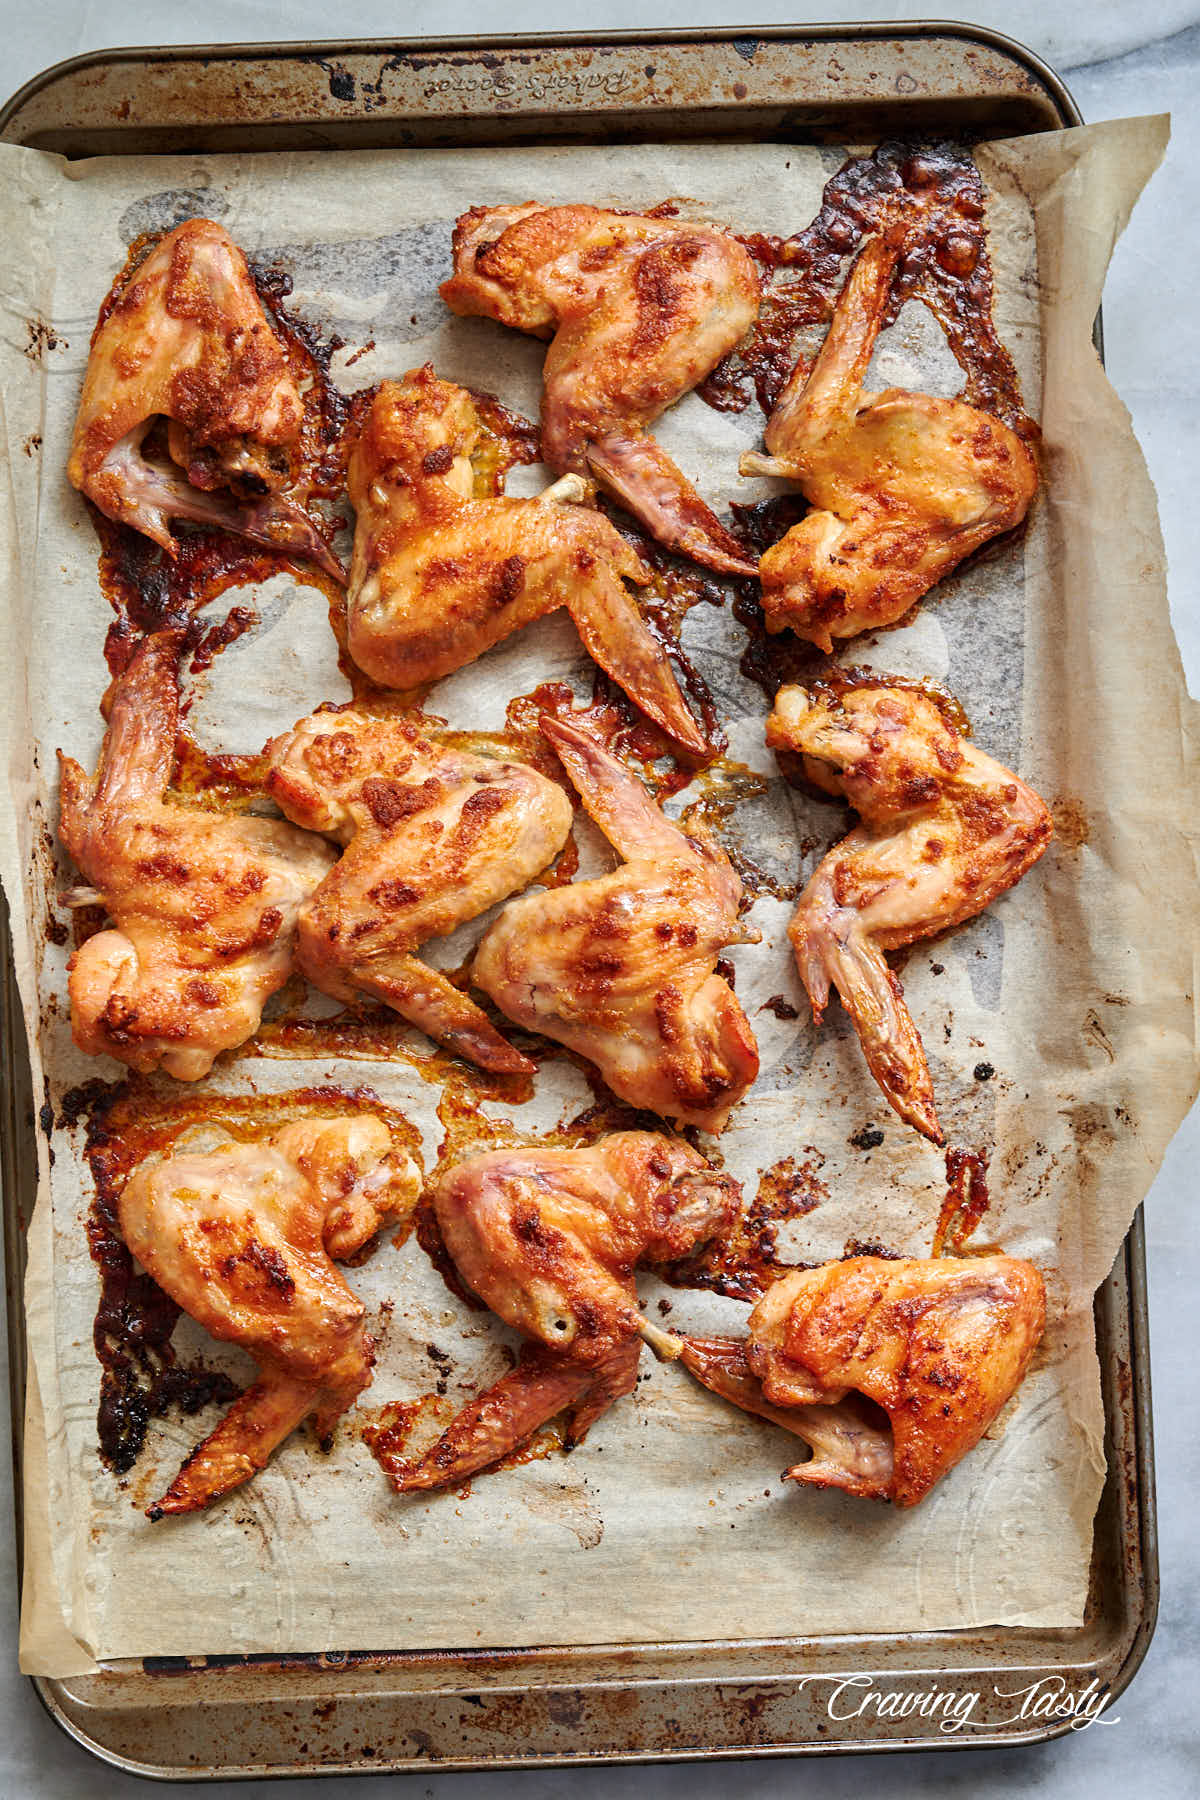 Baked chicken wings, golden brown, on a baking sheet lined with parchment paper.